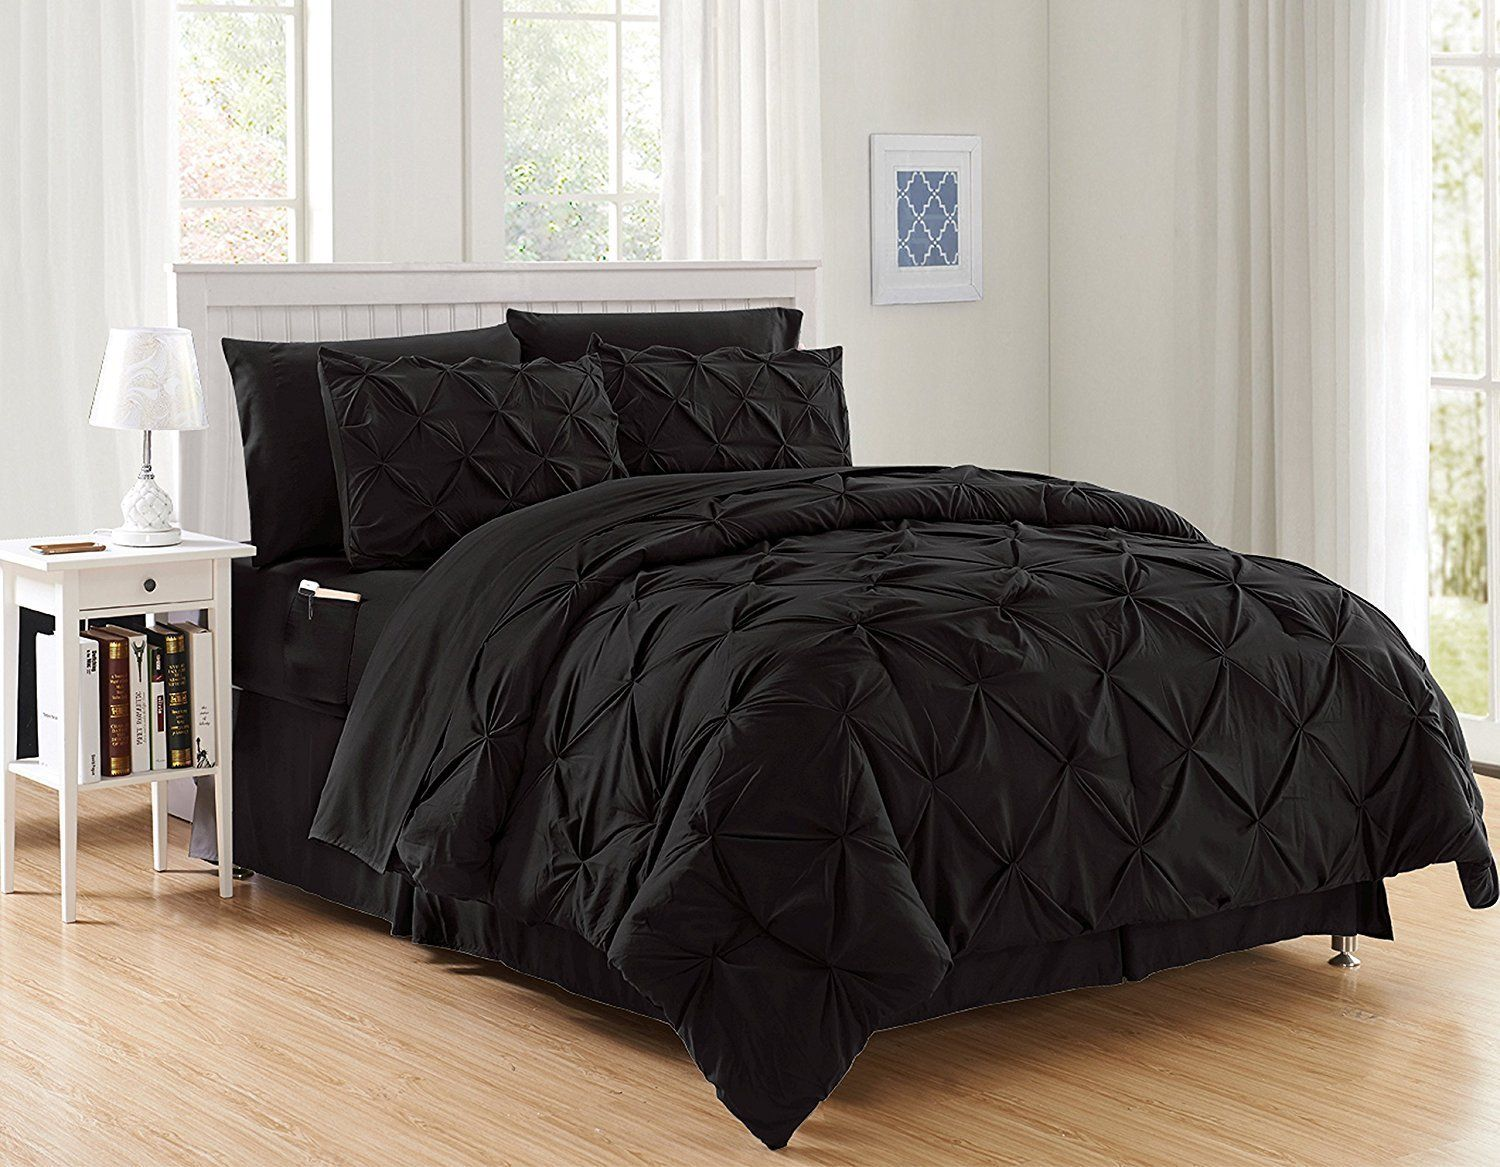 Silky Soft Pintuck Bed In A Bag 8 Piece Comforter Set Hypoallergenic Full Queen Black Walmart Com In 2020 Bed Sheet Sets Comforter Sets Luxury Comforter Sets